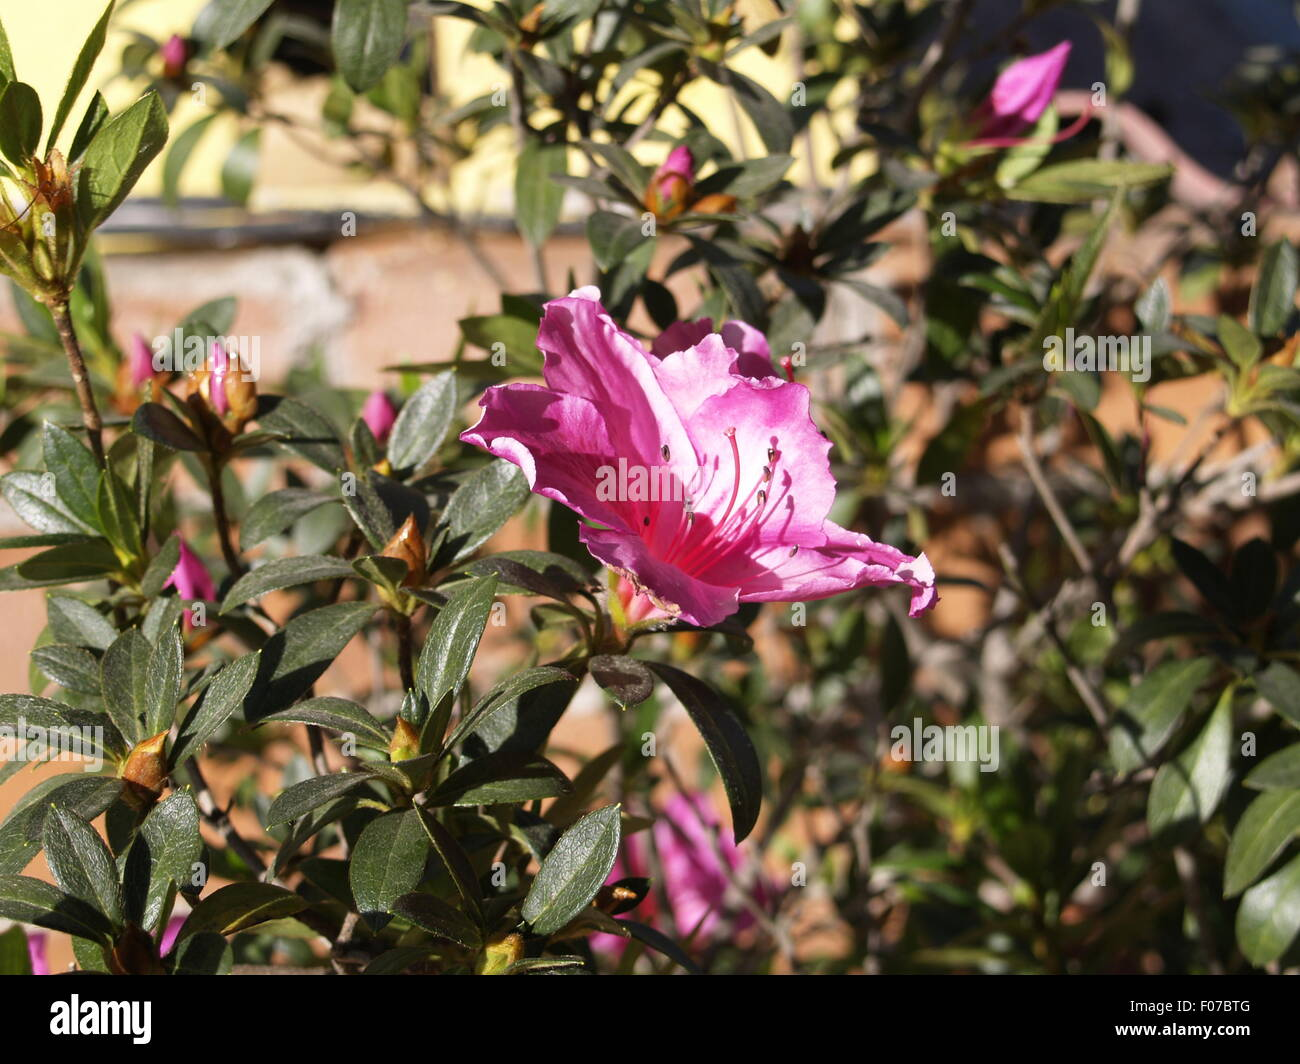 Large pink flower with bush in background stock photo royalty free large pink flower with bush in background mightylinksfo